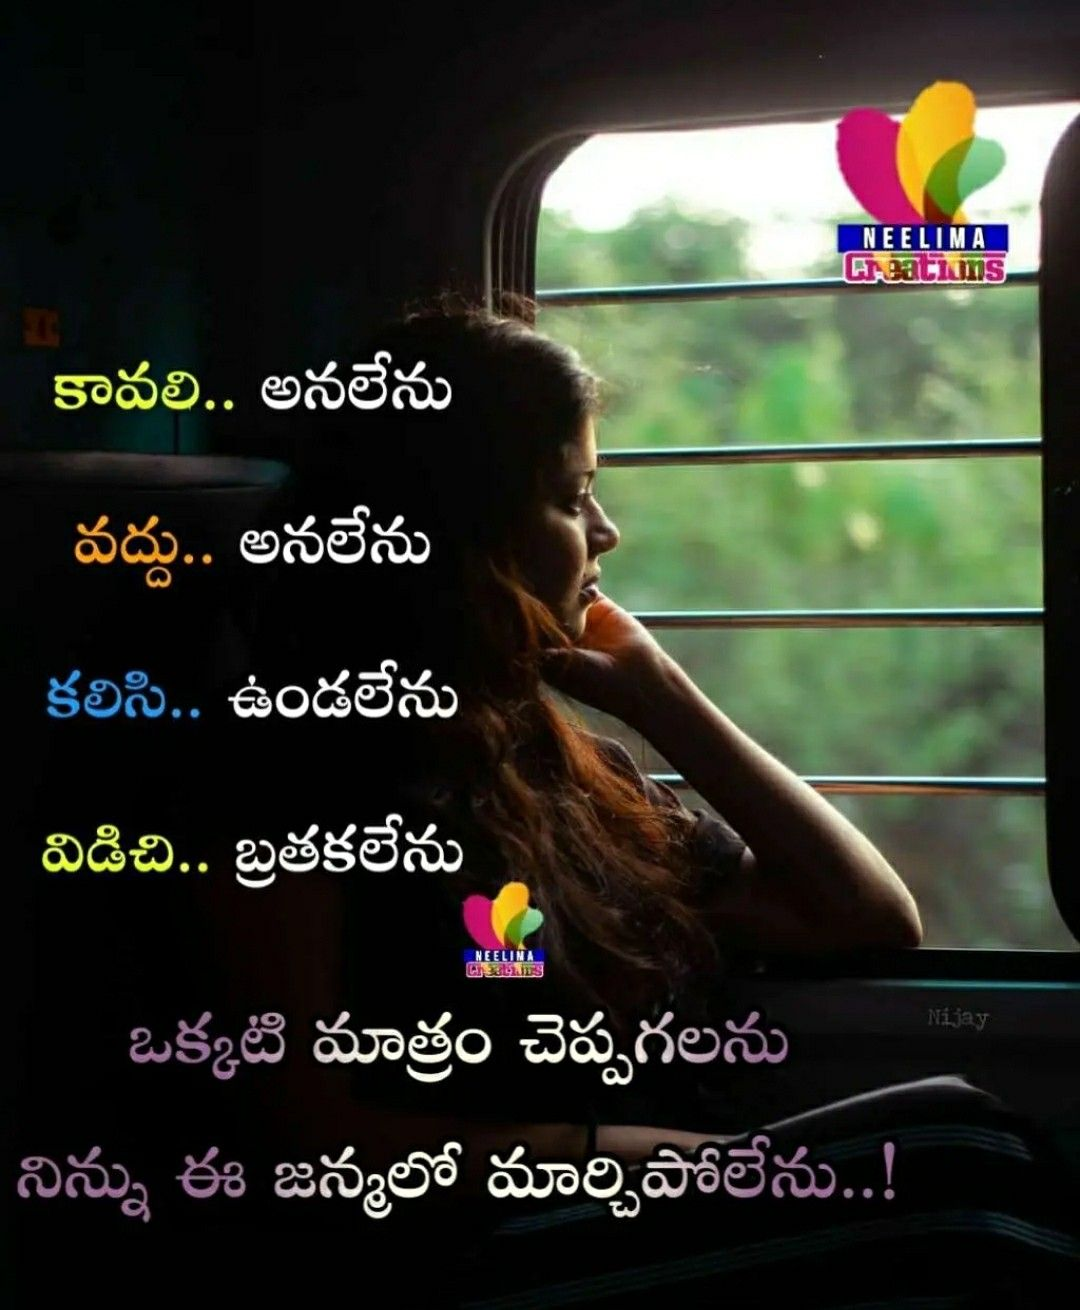 Pin By V J On Love Quotes In 2020 Life Lesson Quotes Telugu Inspirational Quotes Love Quotes For Her